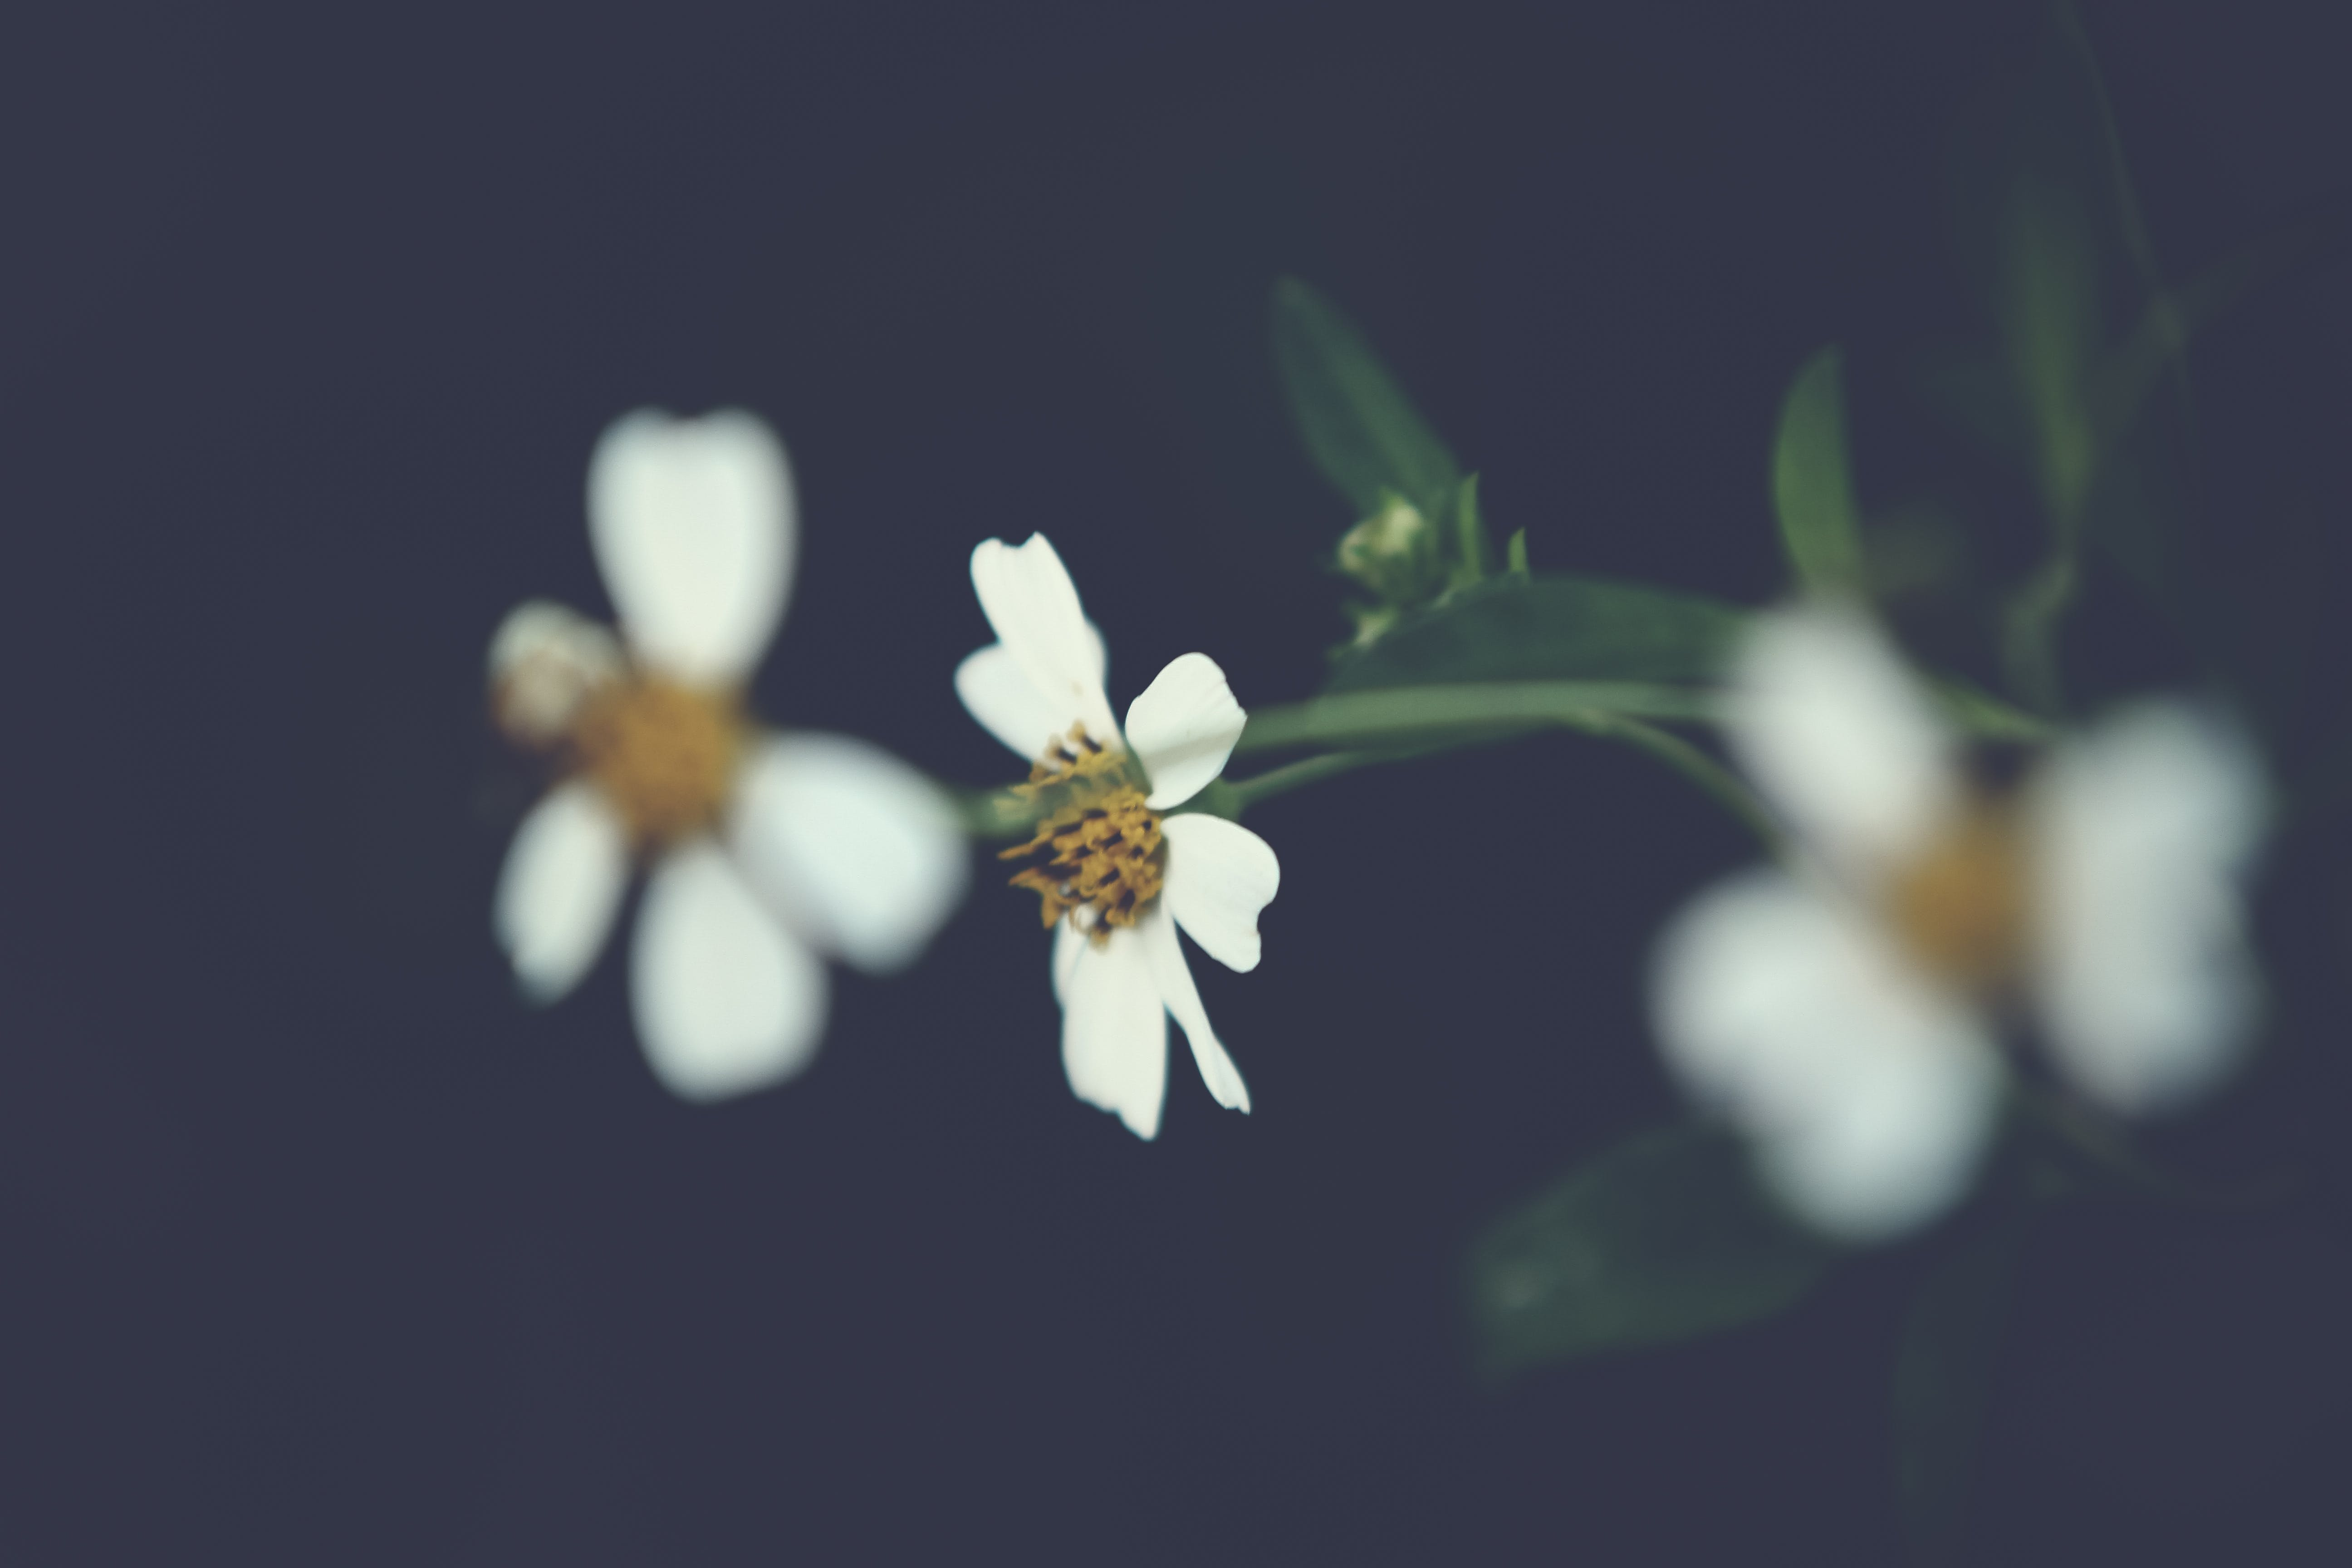 White Petaled Flowers in Selective-focus Photography